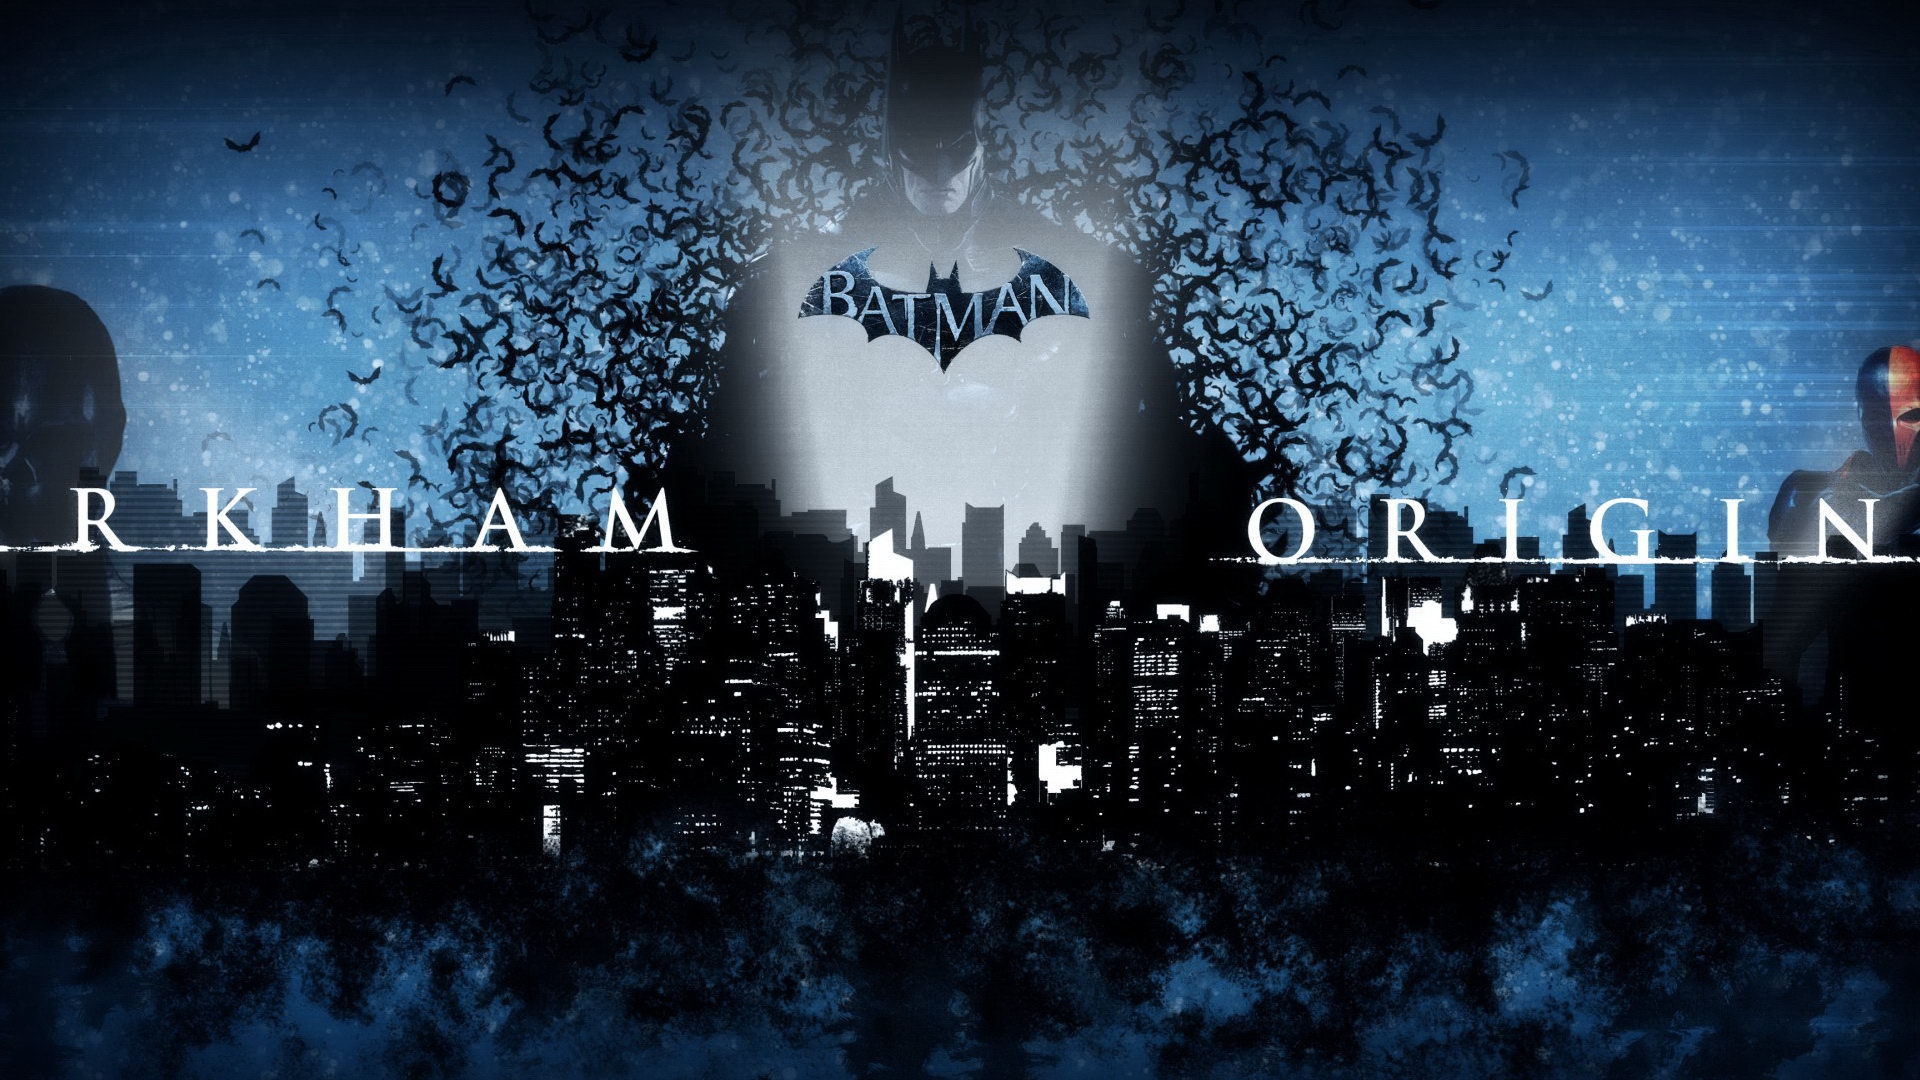 Batman Arkham Origins screensaver hd wallpapers and images 1920x1080